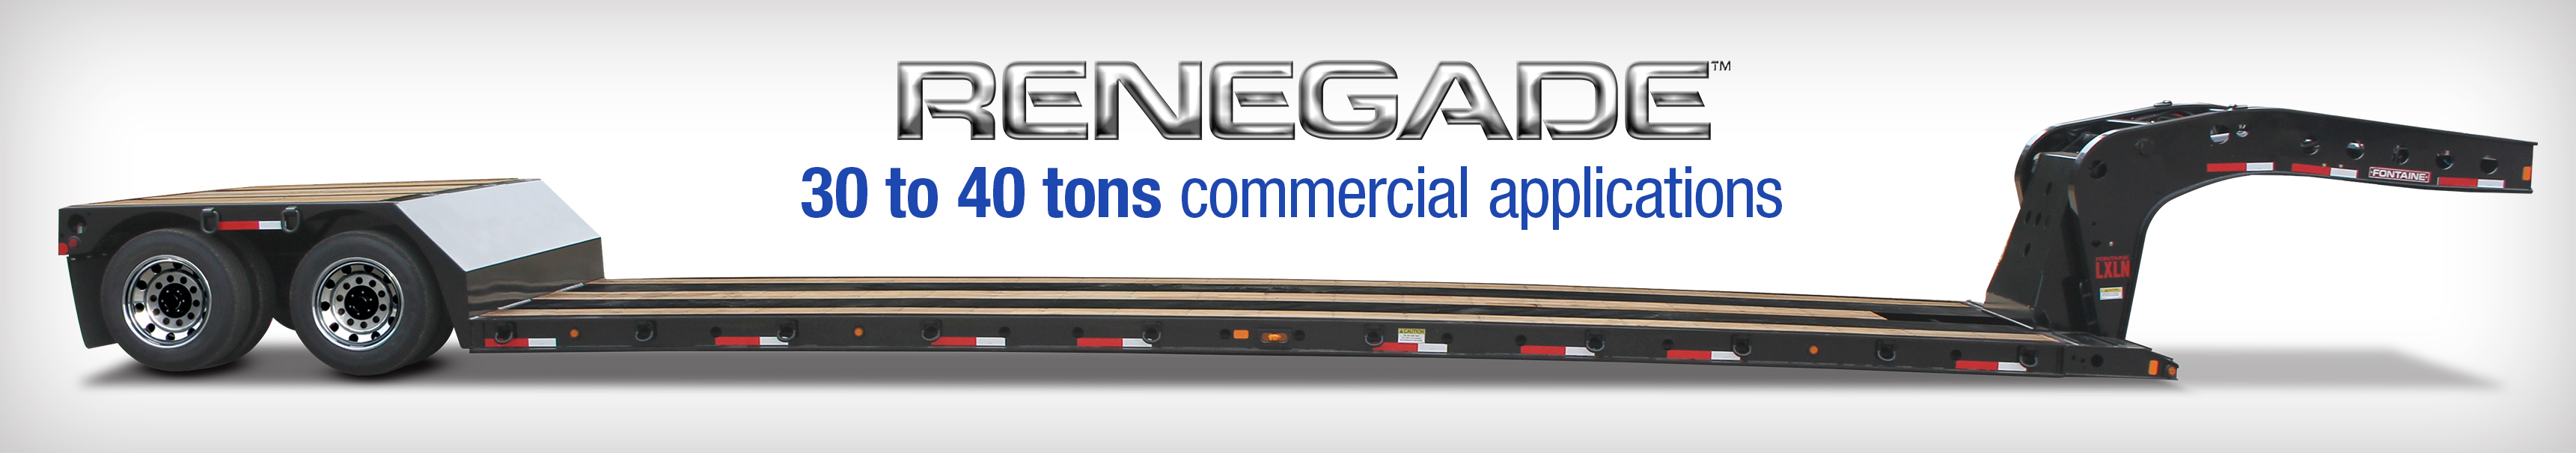 Fontaine Heavy-Haul Renegade Trailers for the commercial trailer industry